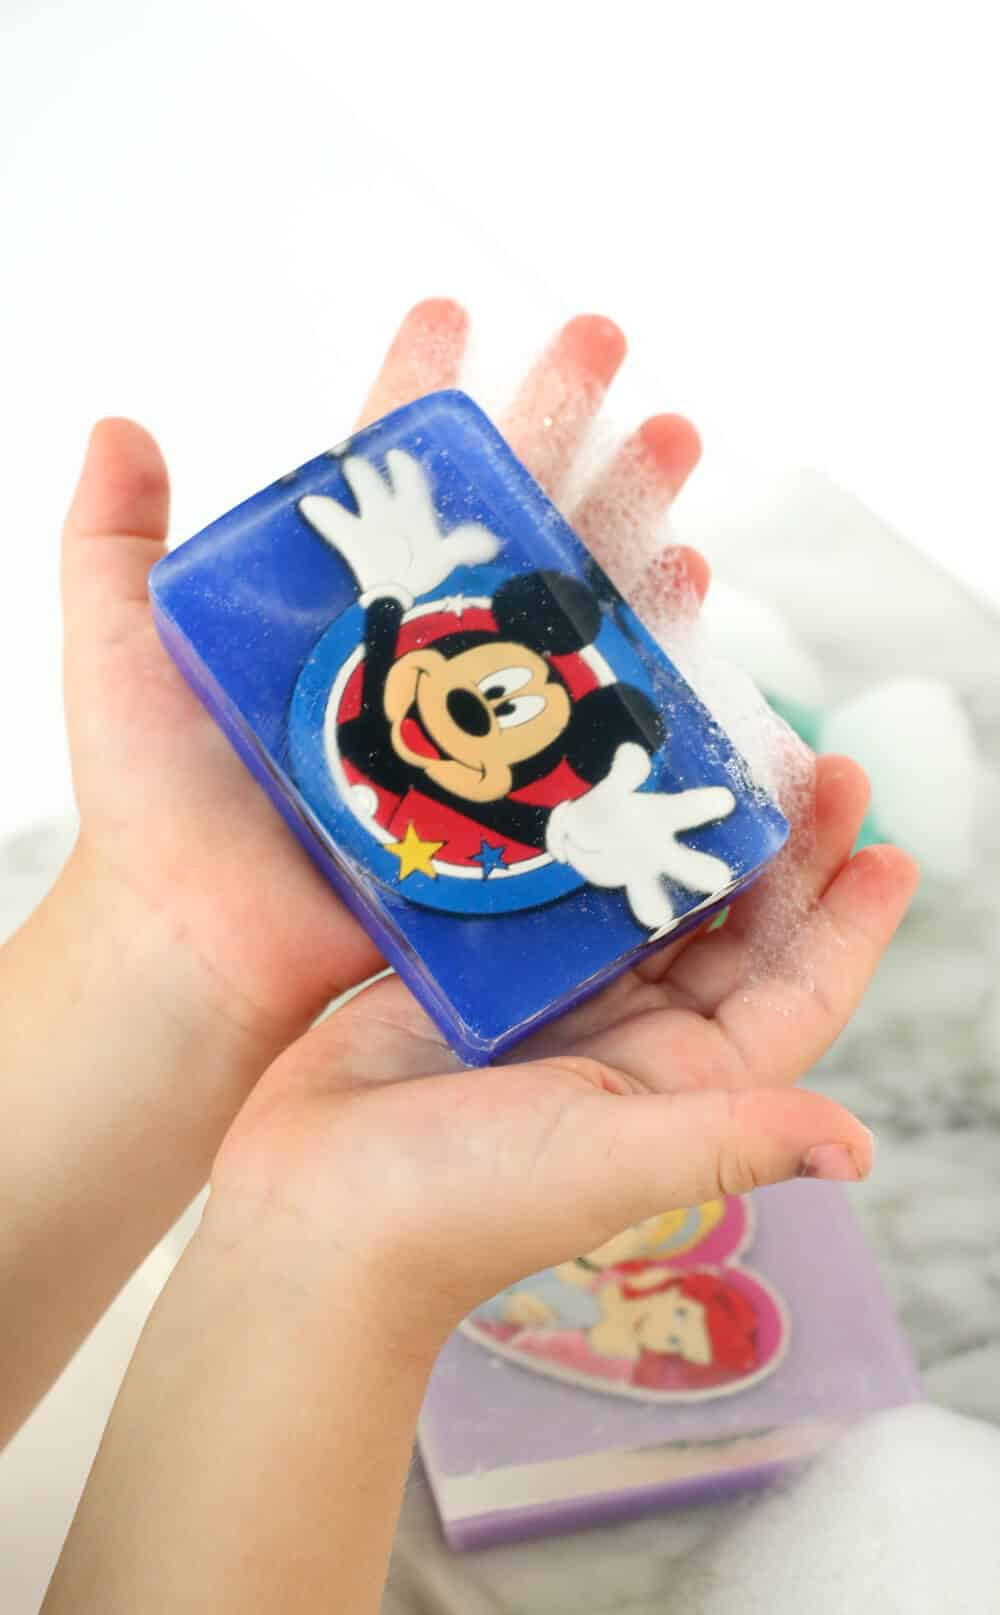 DIY Disney character soaps - Making your own soap is easier than you think with melt and pour glycerine soap base!